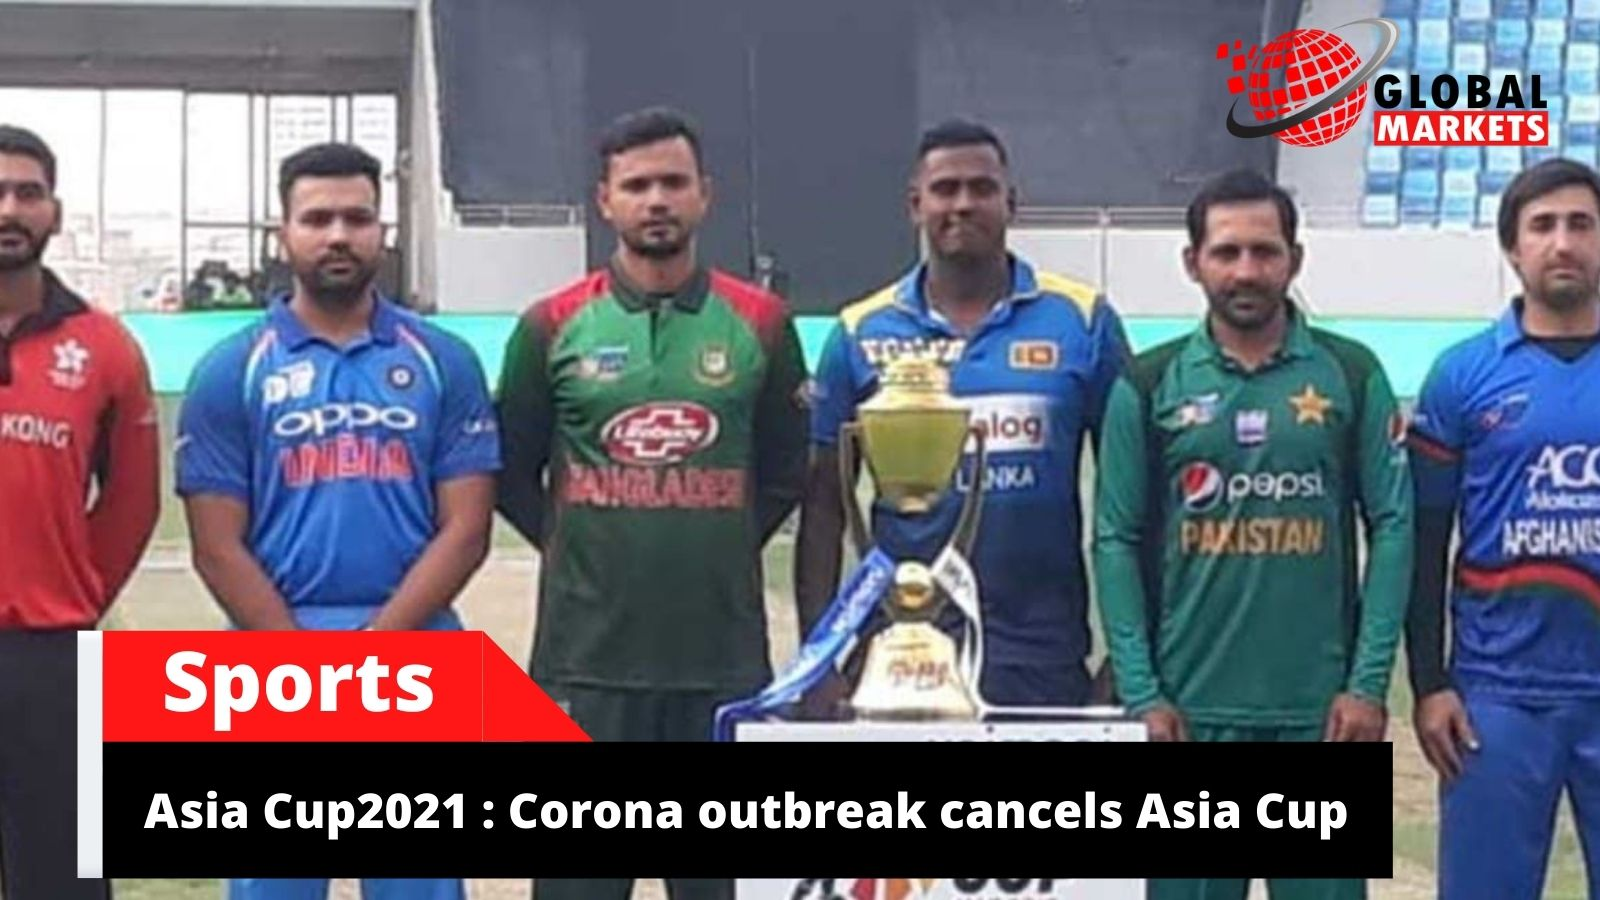 Asia Cup 2021: Corona outbreak cancels Asia Cup for second year in a row